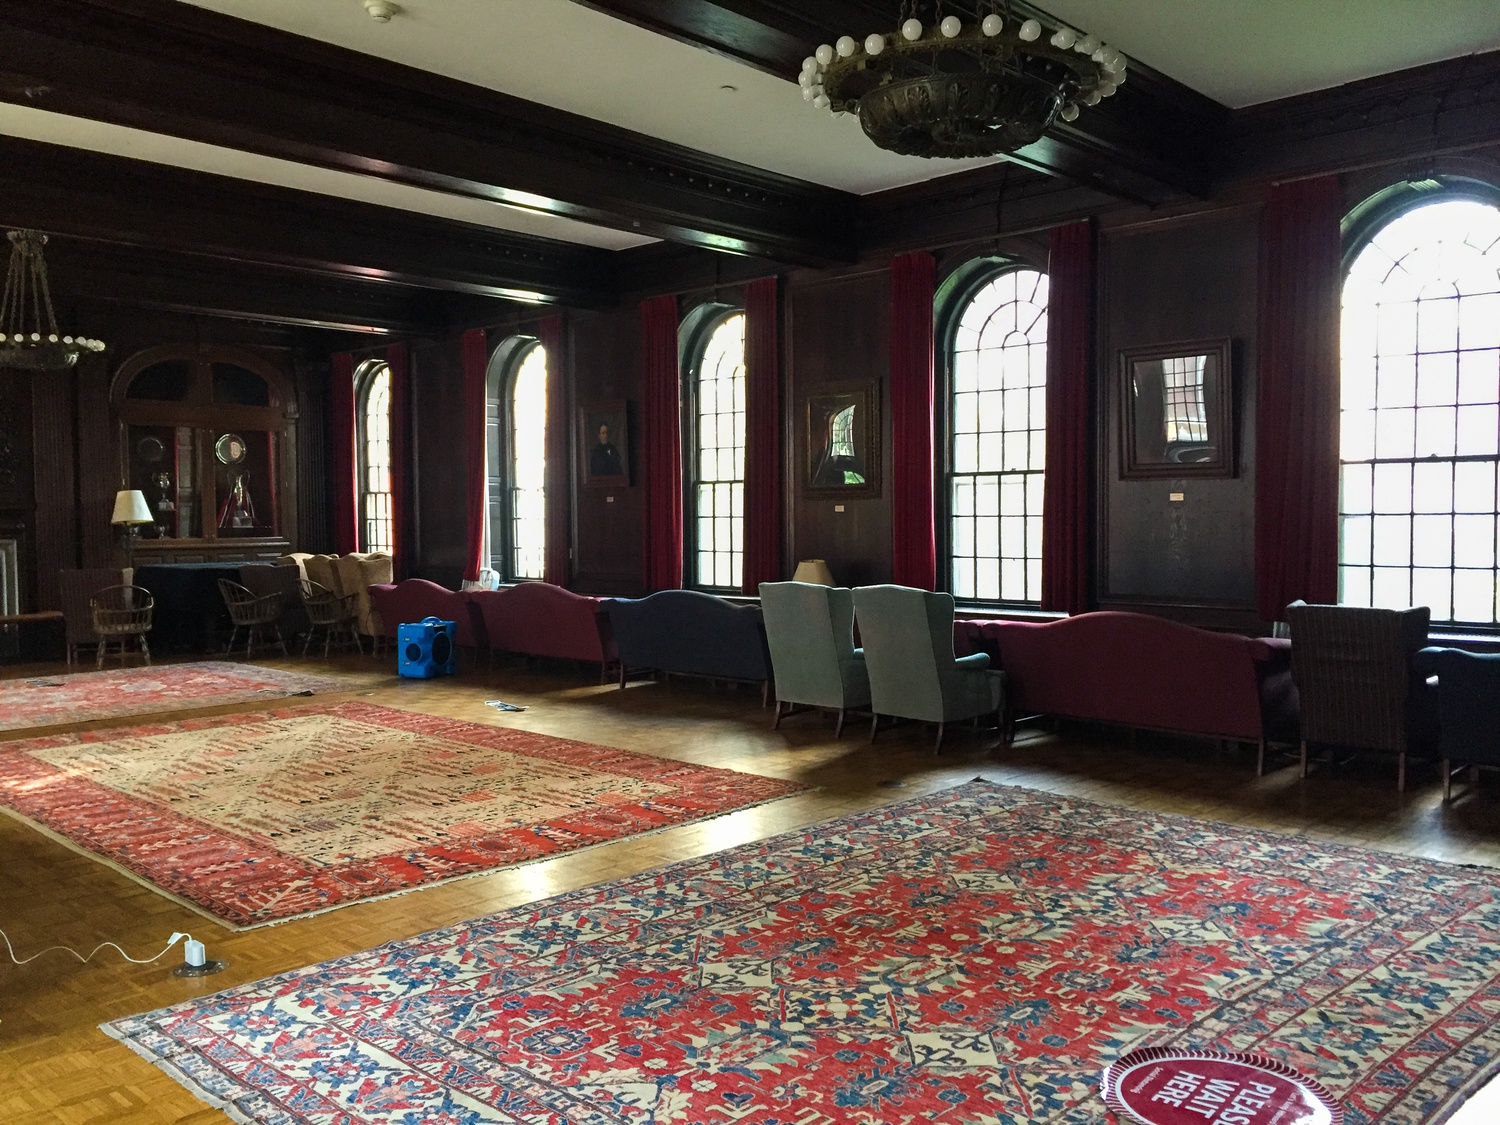 Some common spaces across campus are slated to reopen this week and next week as part of a new pilot program, Dean of Students Katherine G. O'Dair and Harvard Library Vice President Martha J. Whitehead announced.